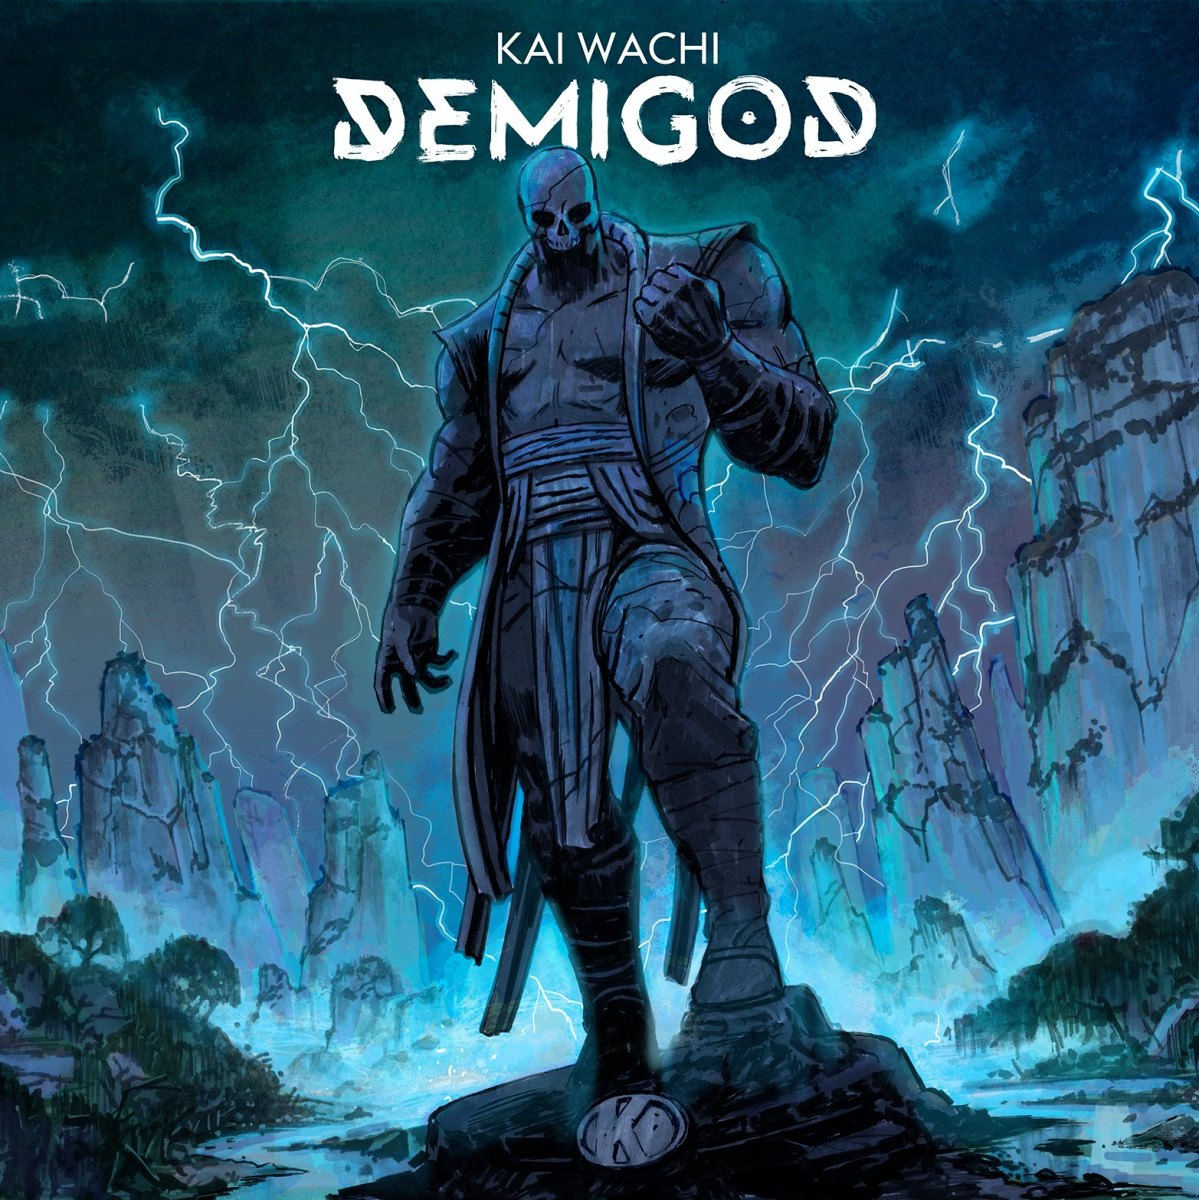 KAI WACHI - Demigod LP (Album Art) - OUT NOW on Kannibalen Records